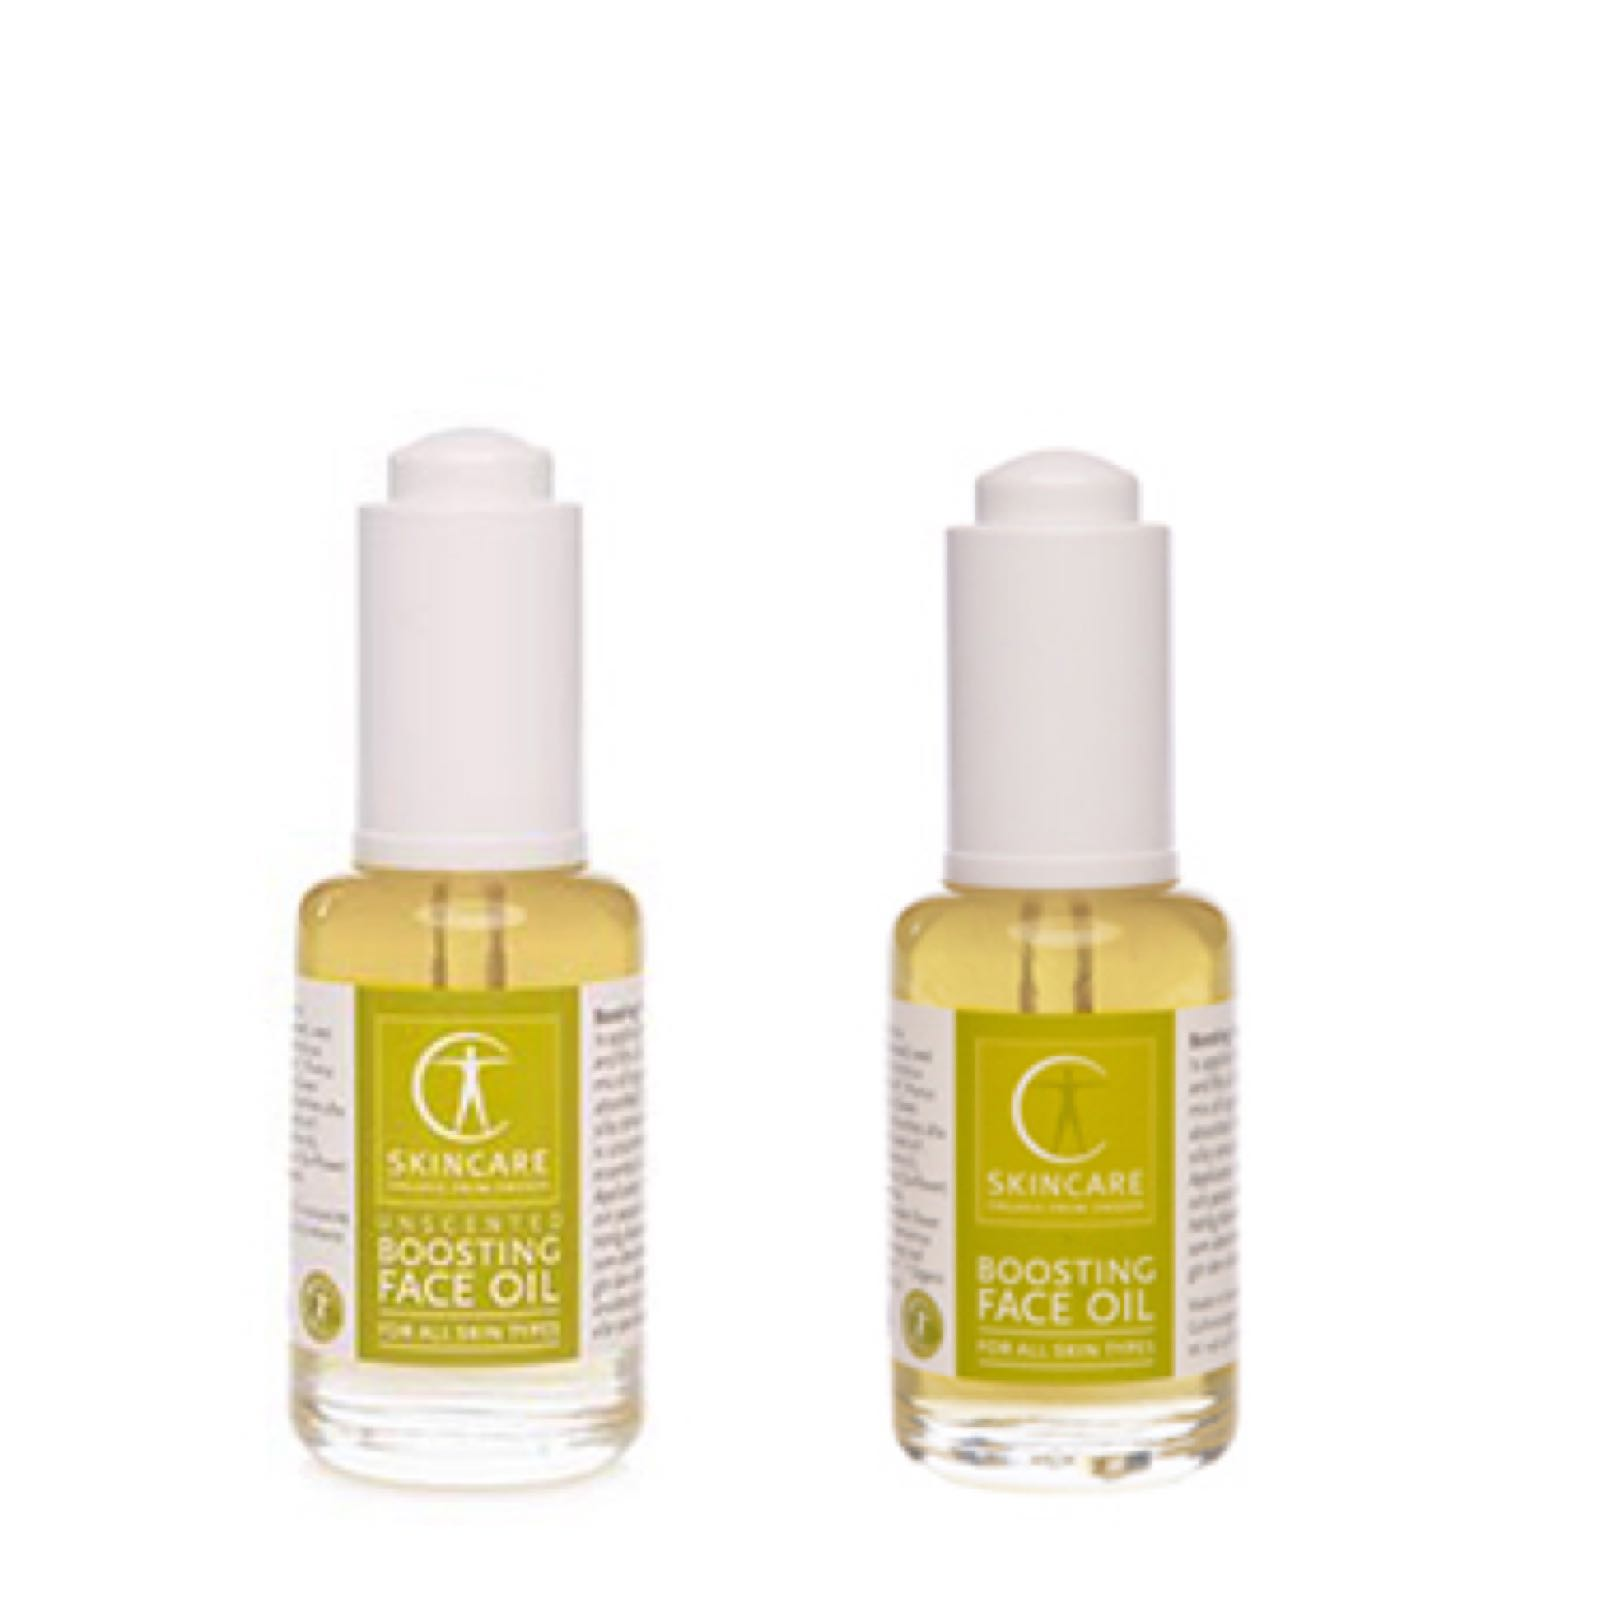 C Skincare - Boosting Face Oil